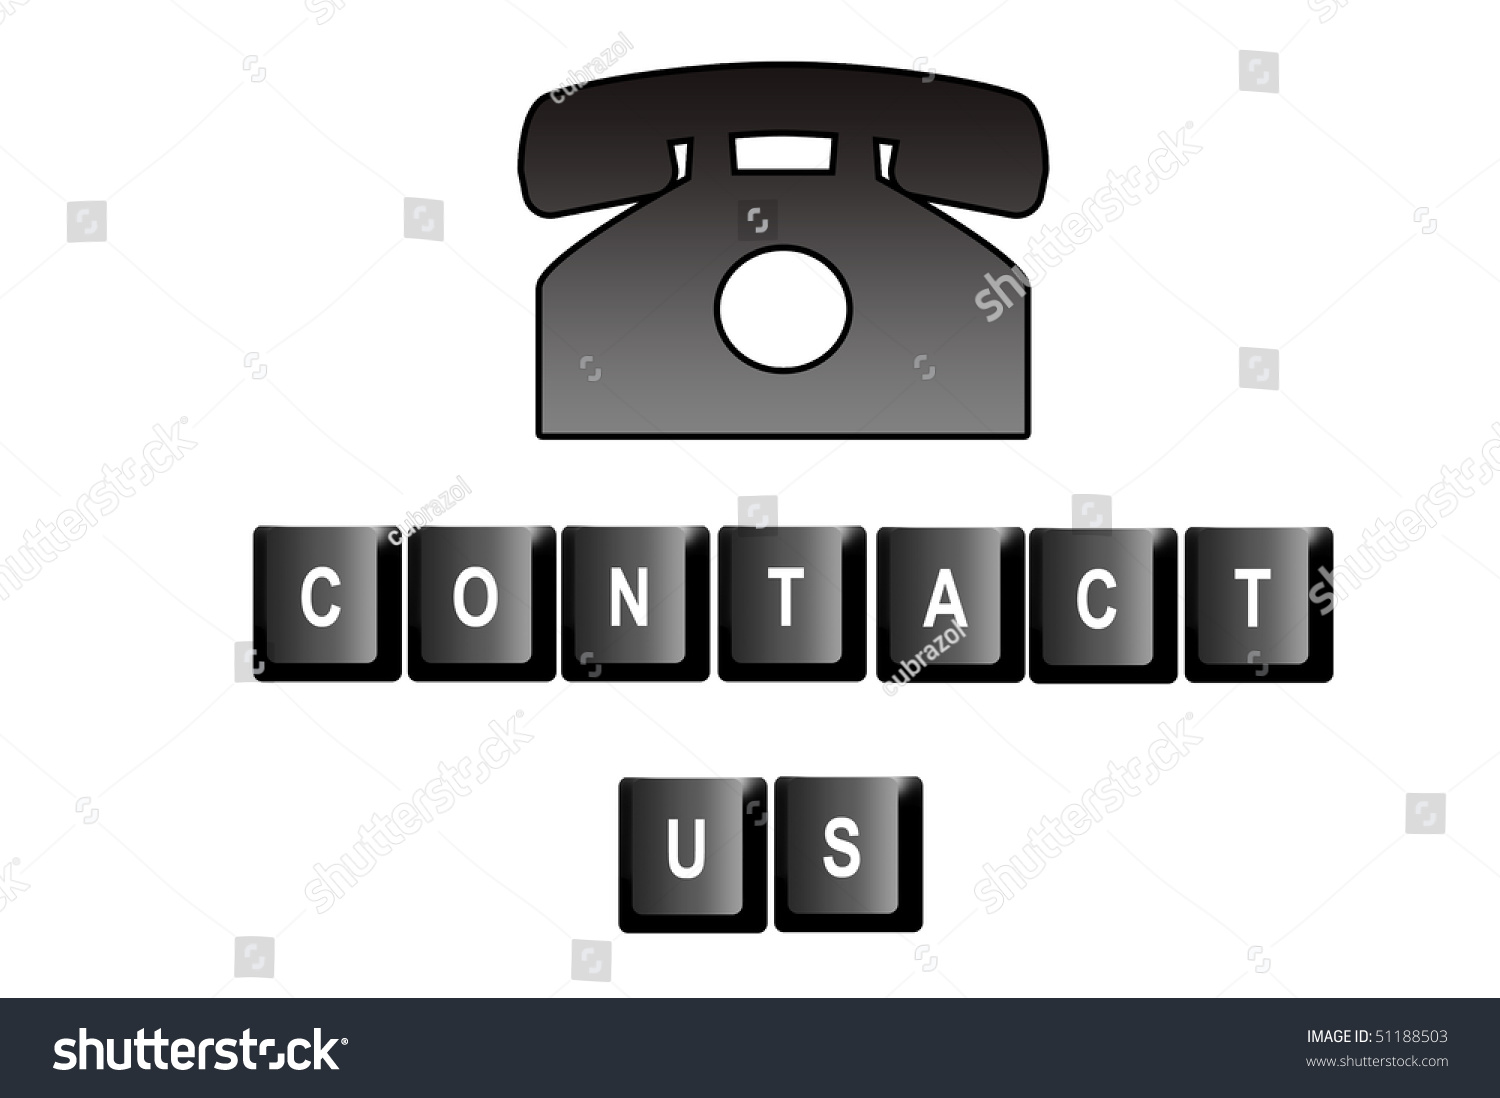 Contact us written computer keyboard letters stock illustration contact us written with computer keyboard letters and a symbol of a telephone biocorpaavc